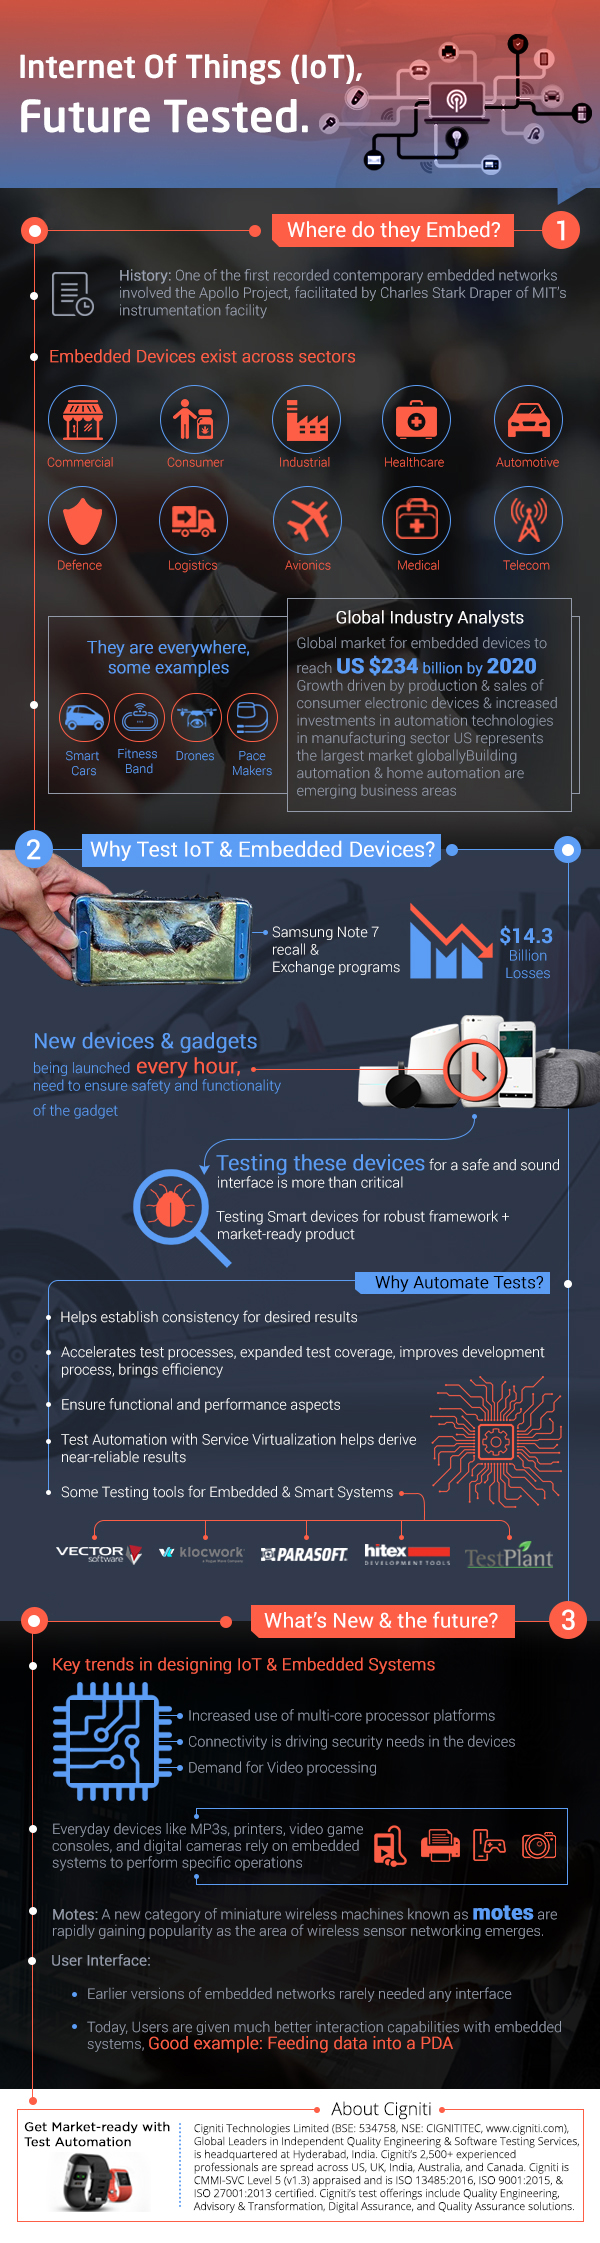 Internet Of Things (IoT), Future Tested